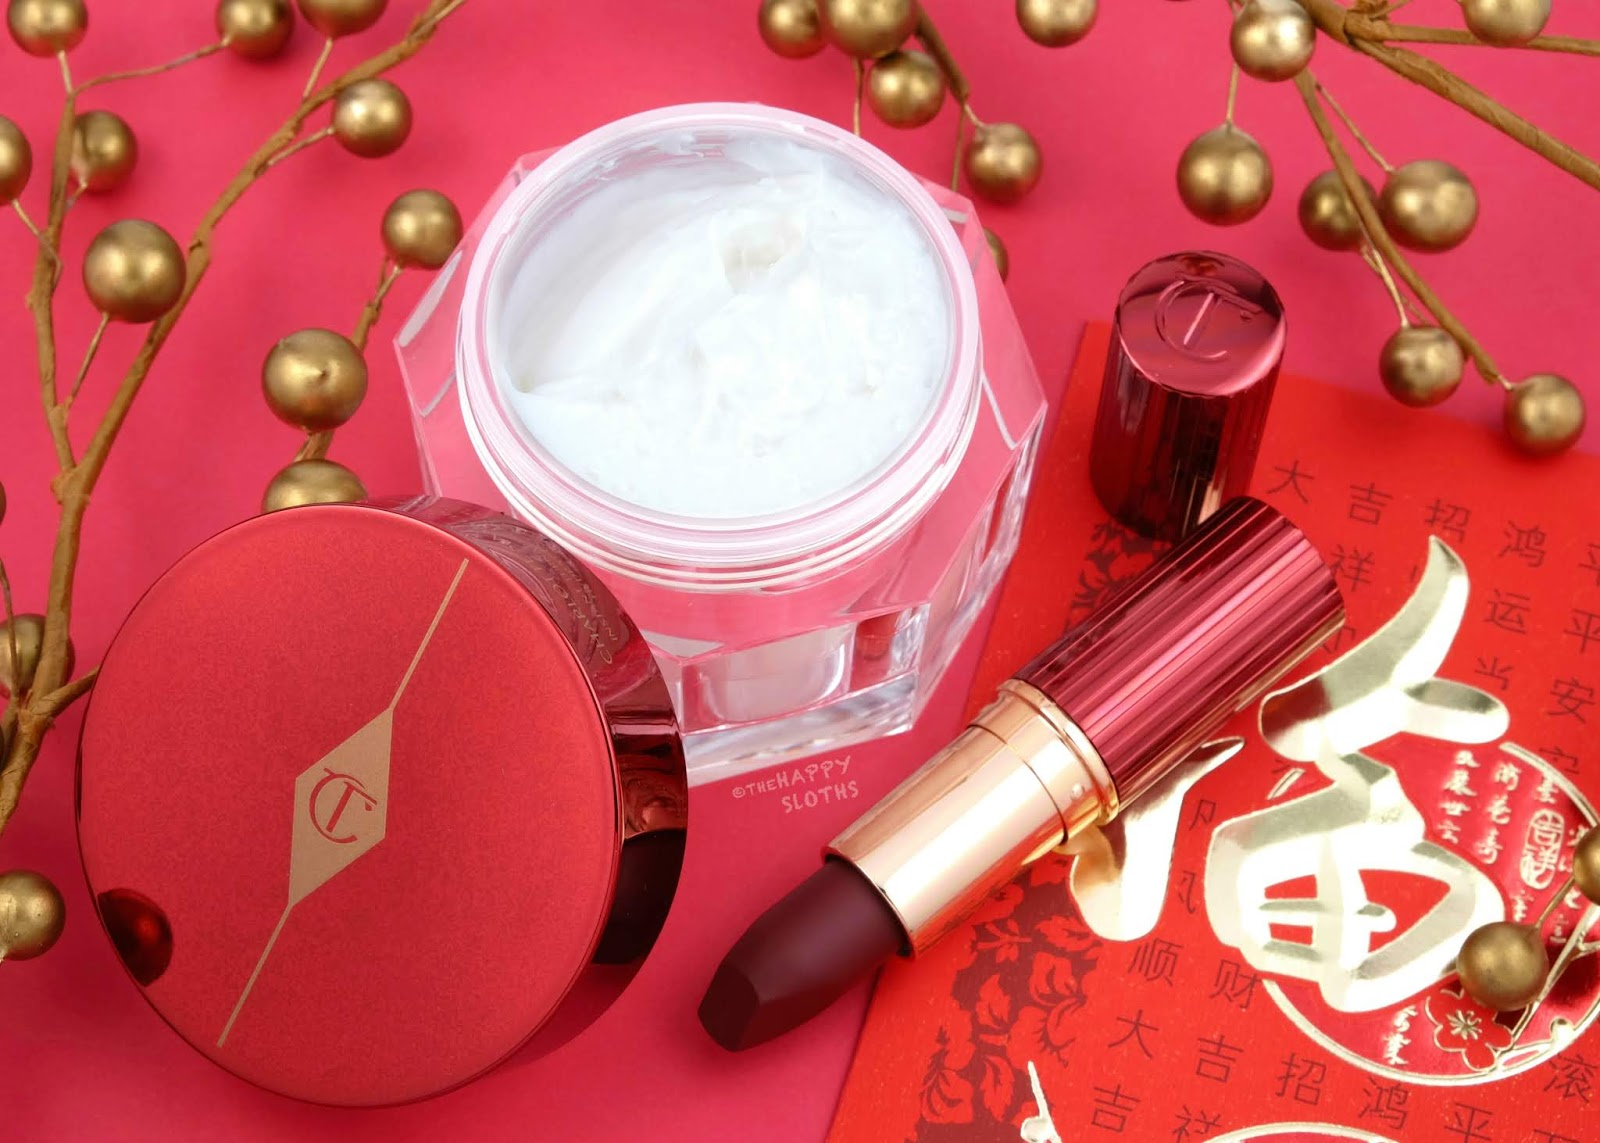 Charlotte Tilbury | Lunar New Year 2020 Limited Edition Collection: Review and Swatches